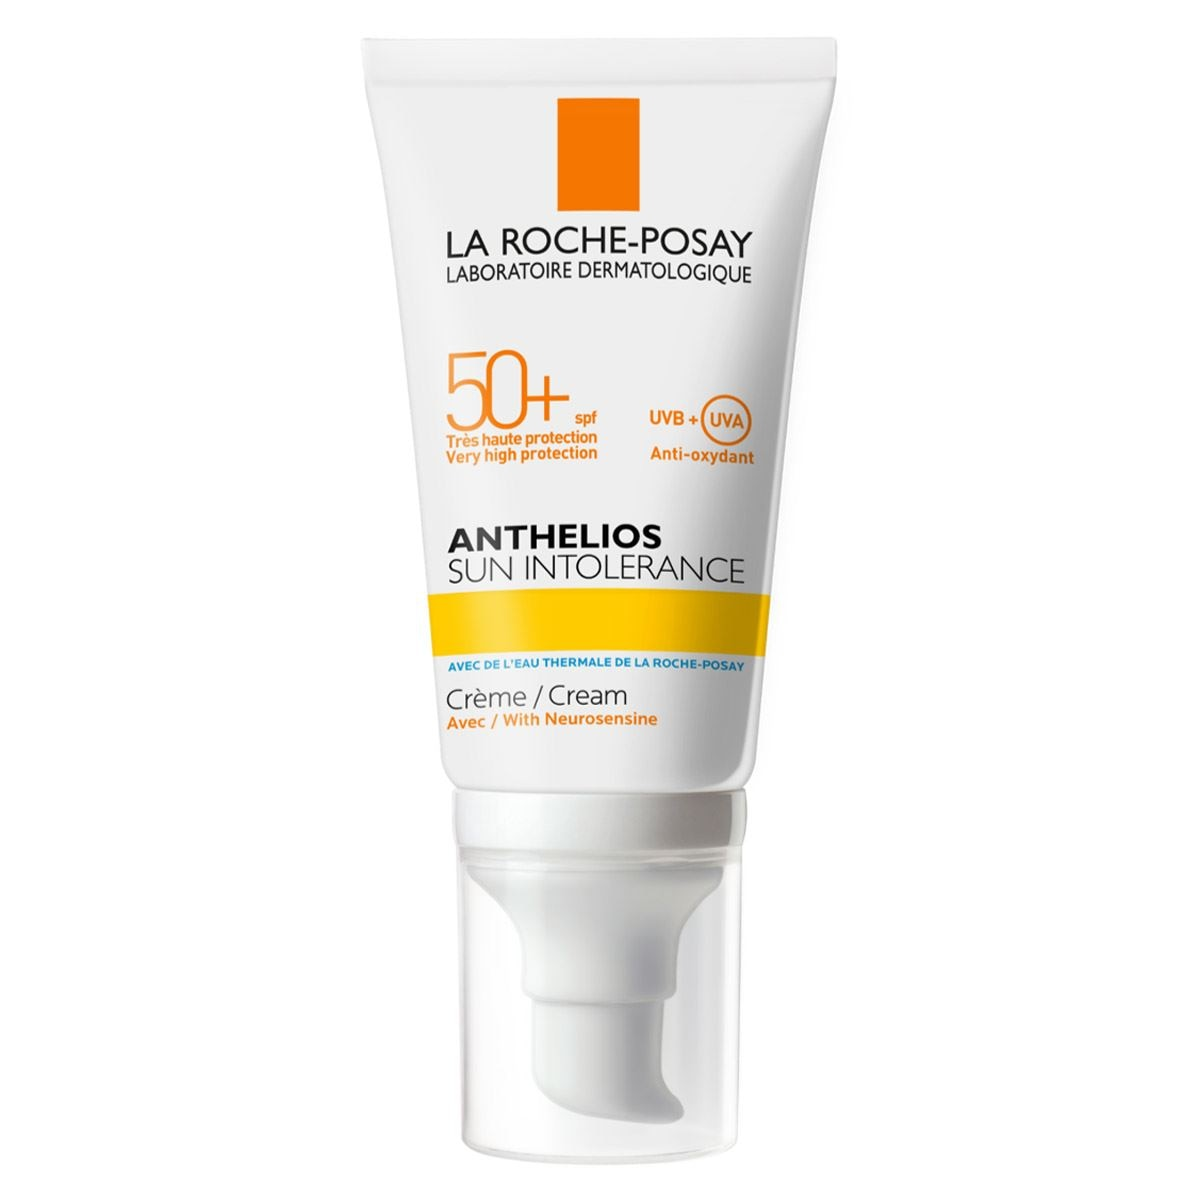 Anthelios sun intolerance con fps 50+ de 50 ml  - Sanborns